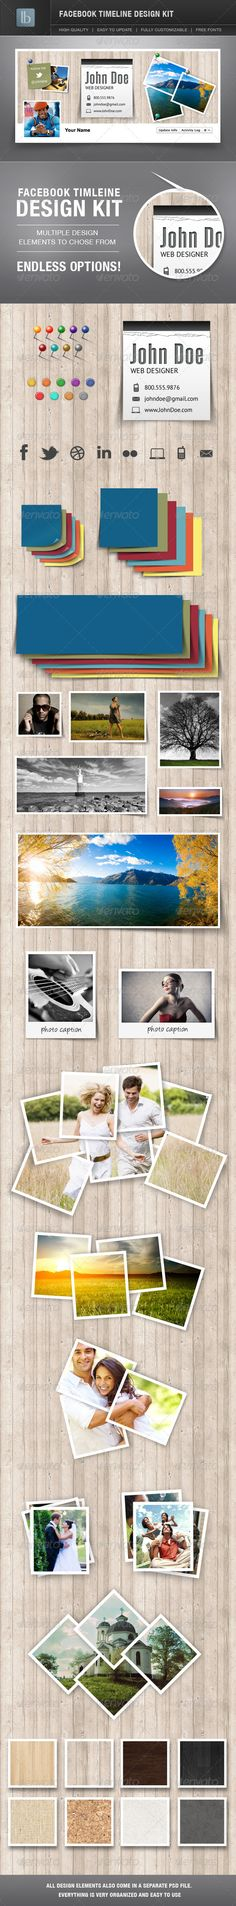 Facebook Timeline Cover Design Kit - Facebook Timeline Covers Social Media